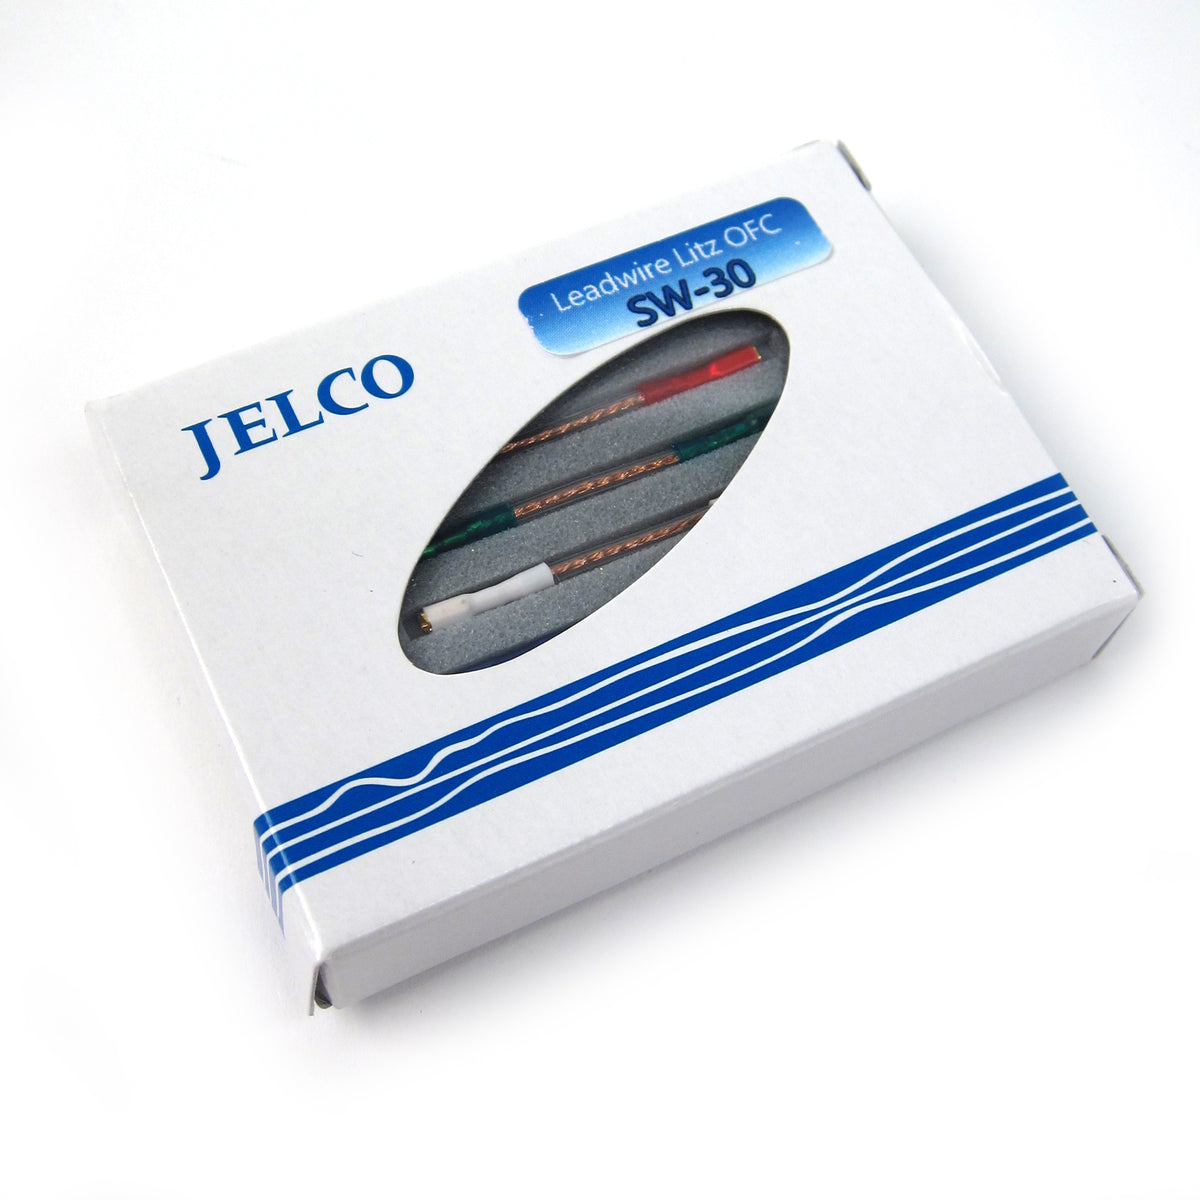 Jelco: SW-30 Headshell Phono Lead Wires